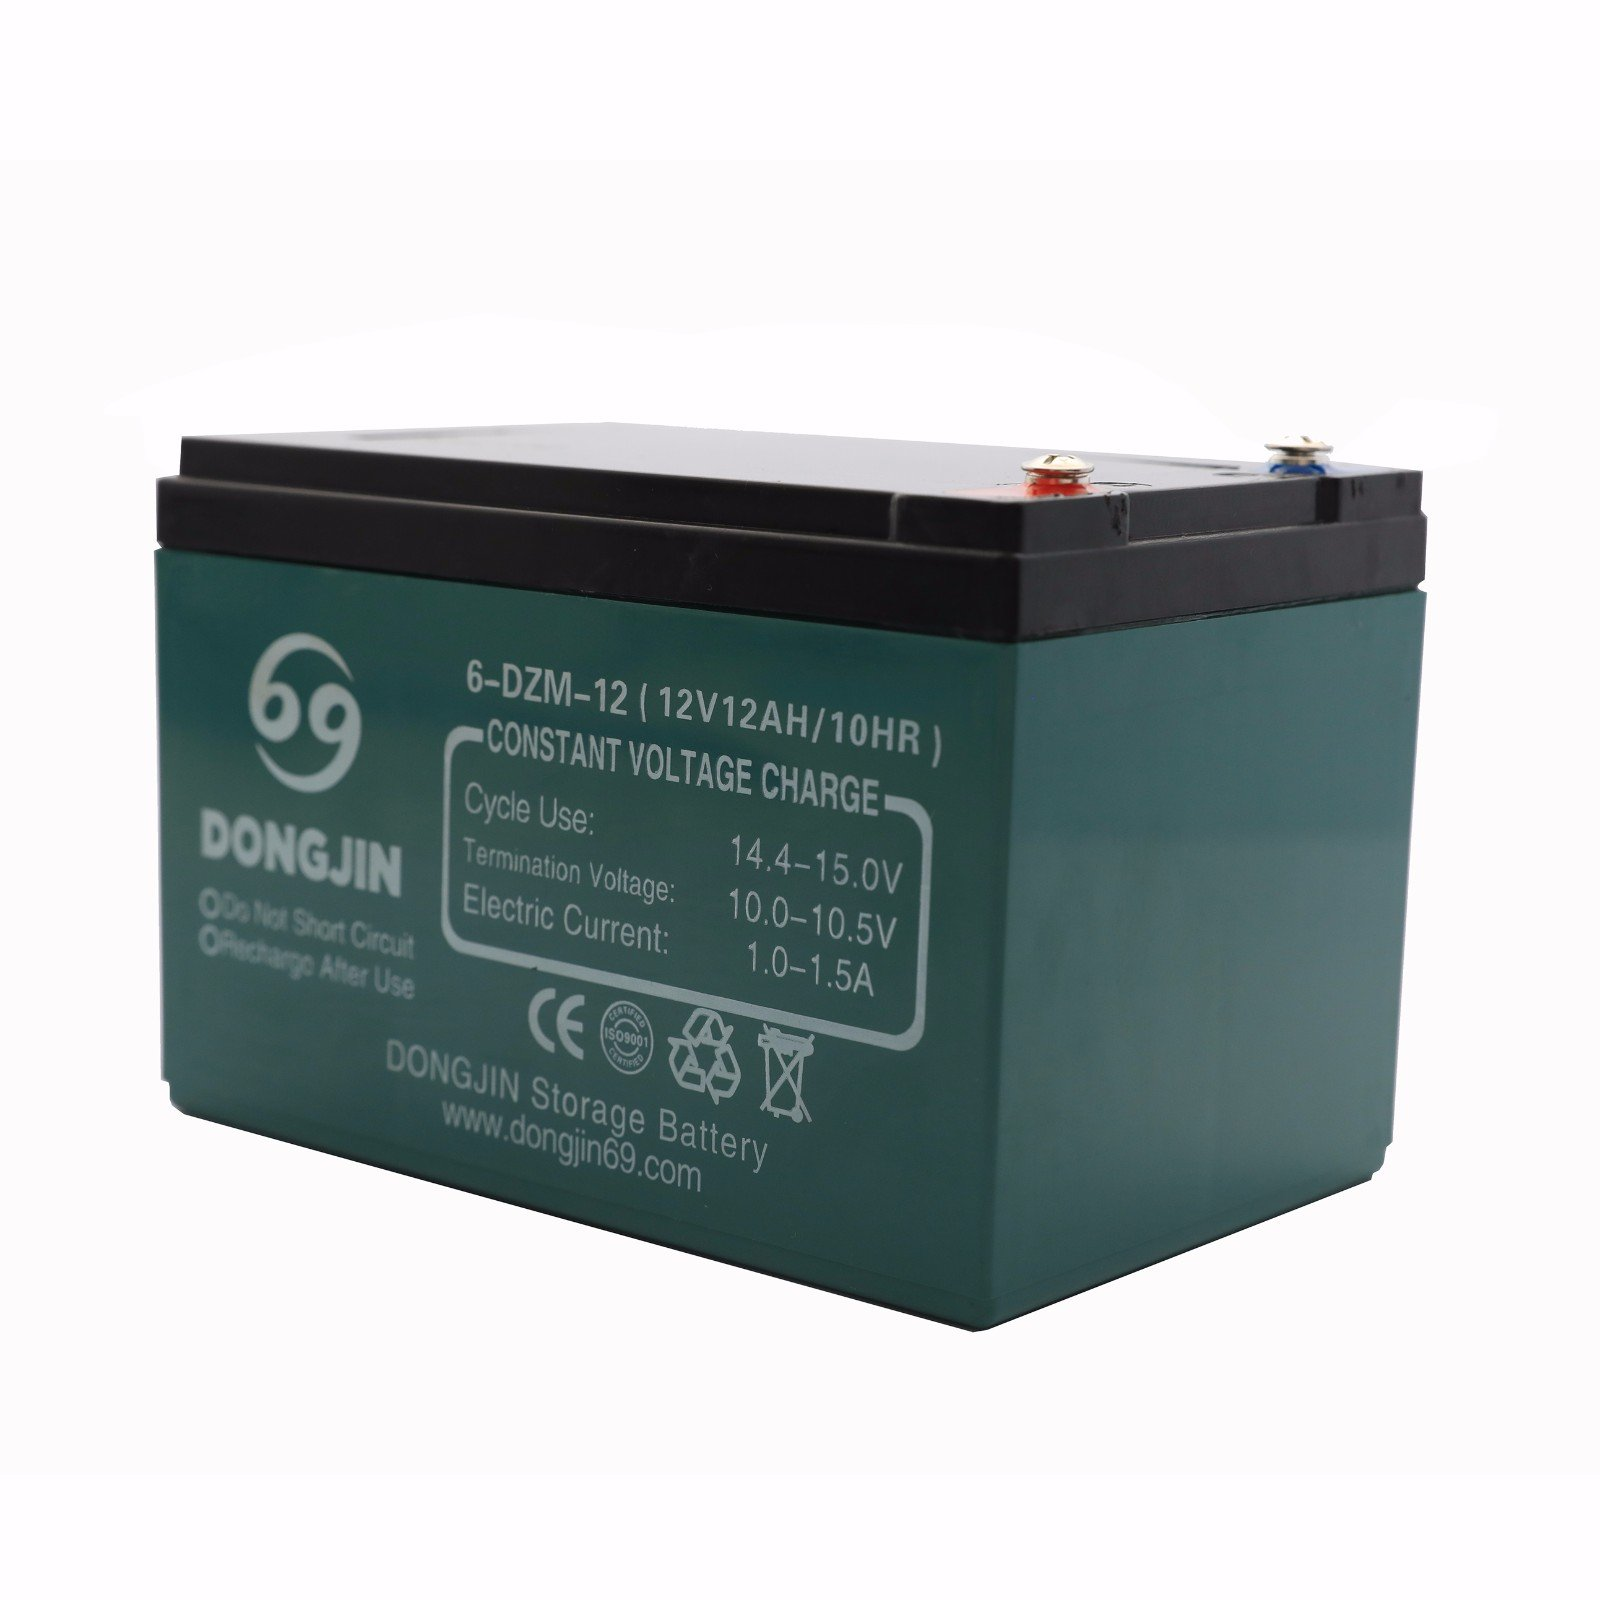 TDPRO 12V 12Ah 6-DZM-12 Rechargeable Battery for Electric Bike Scooter Go Kart